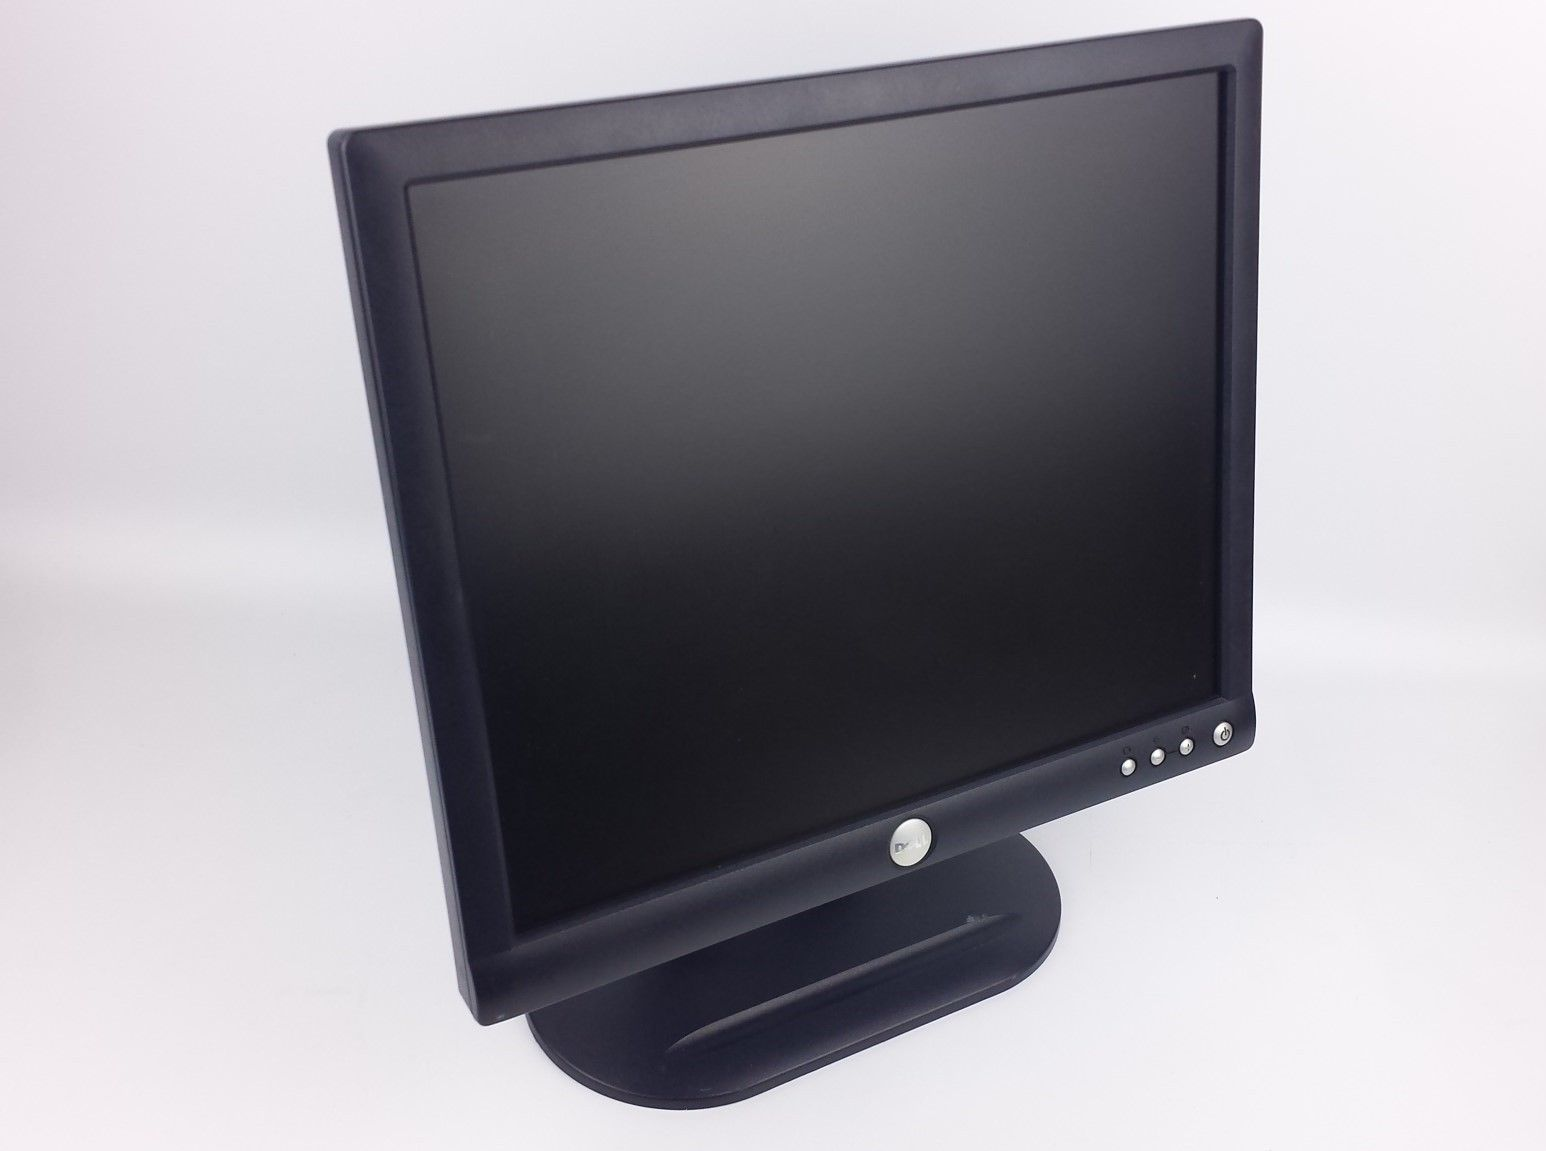 "Dell E172FPt Flat Screen LCD Display Monitor 17"" with Power and VGA Cord"